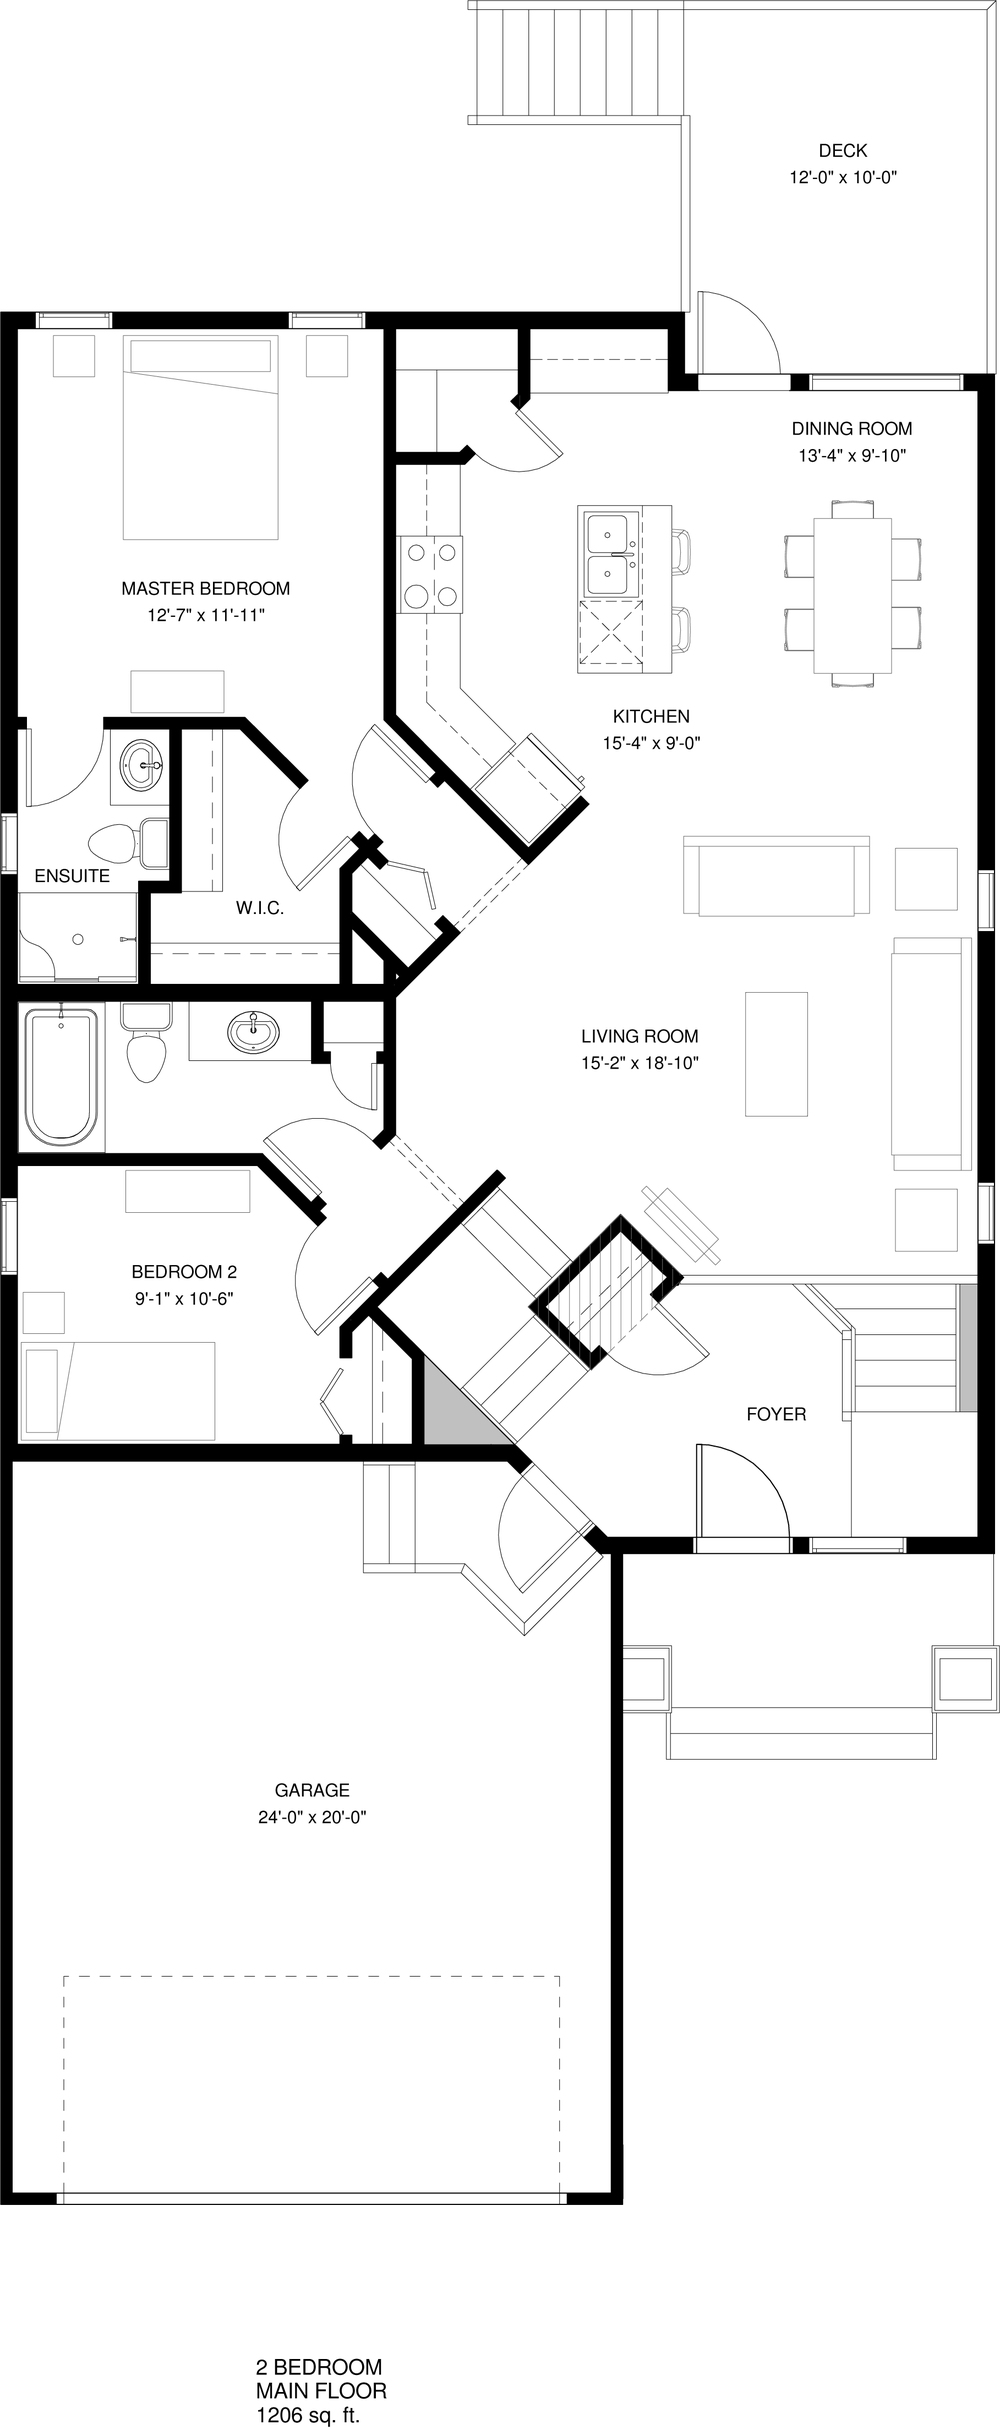 Main Floor 2 Bedroom Option 1206 sq ft